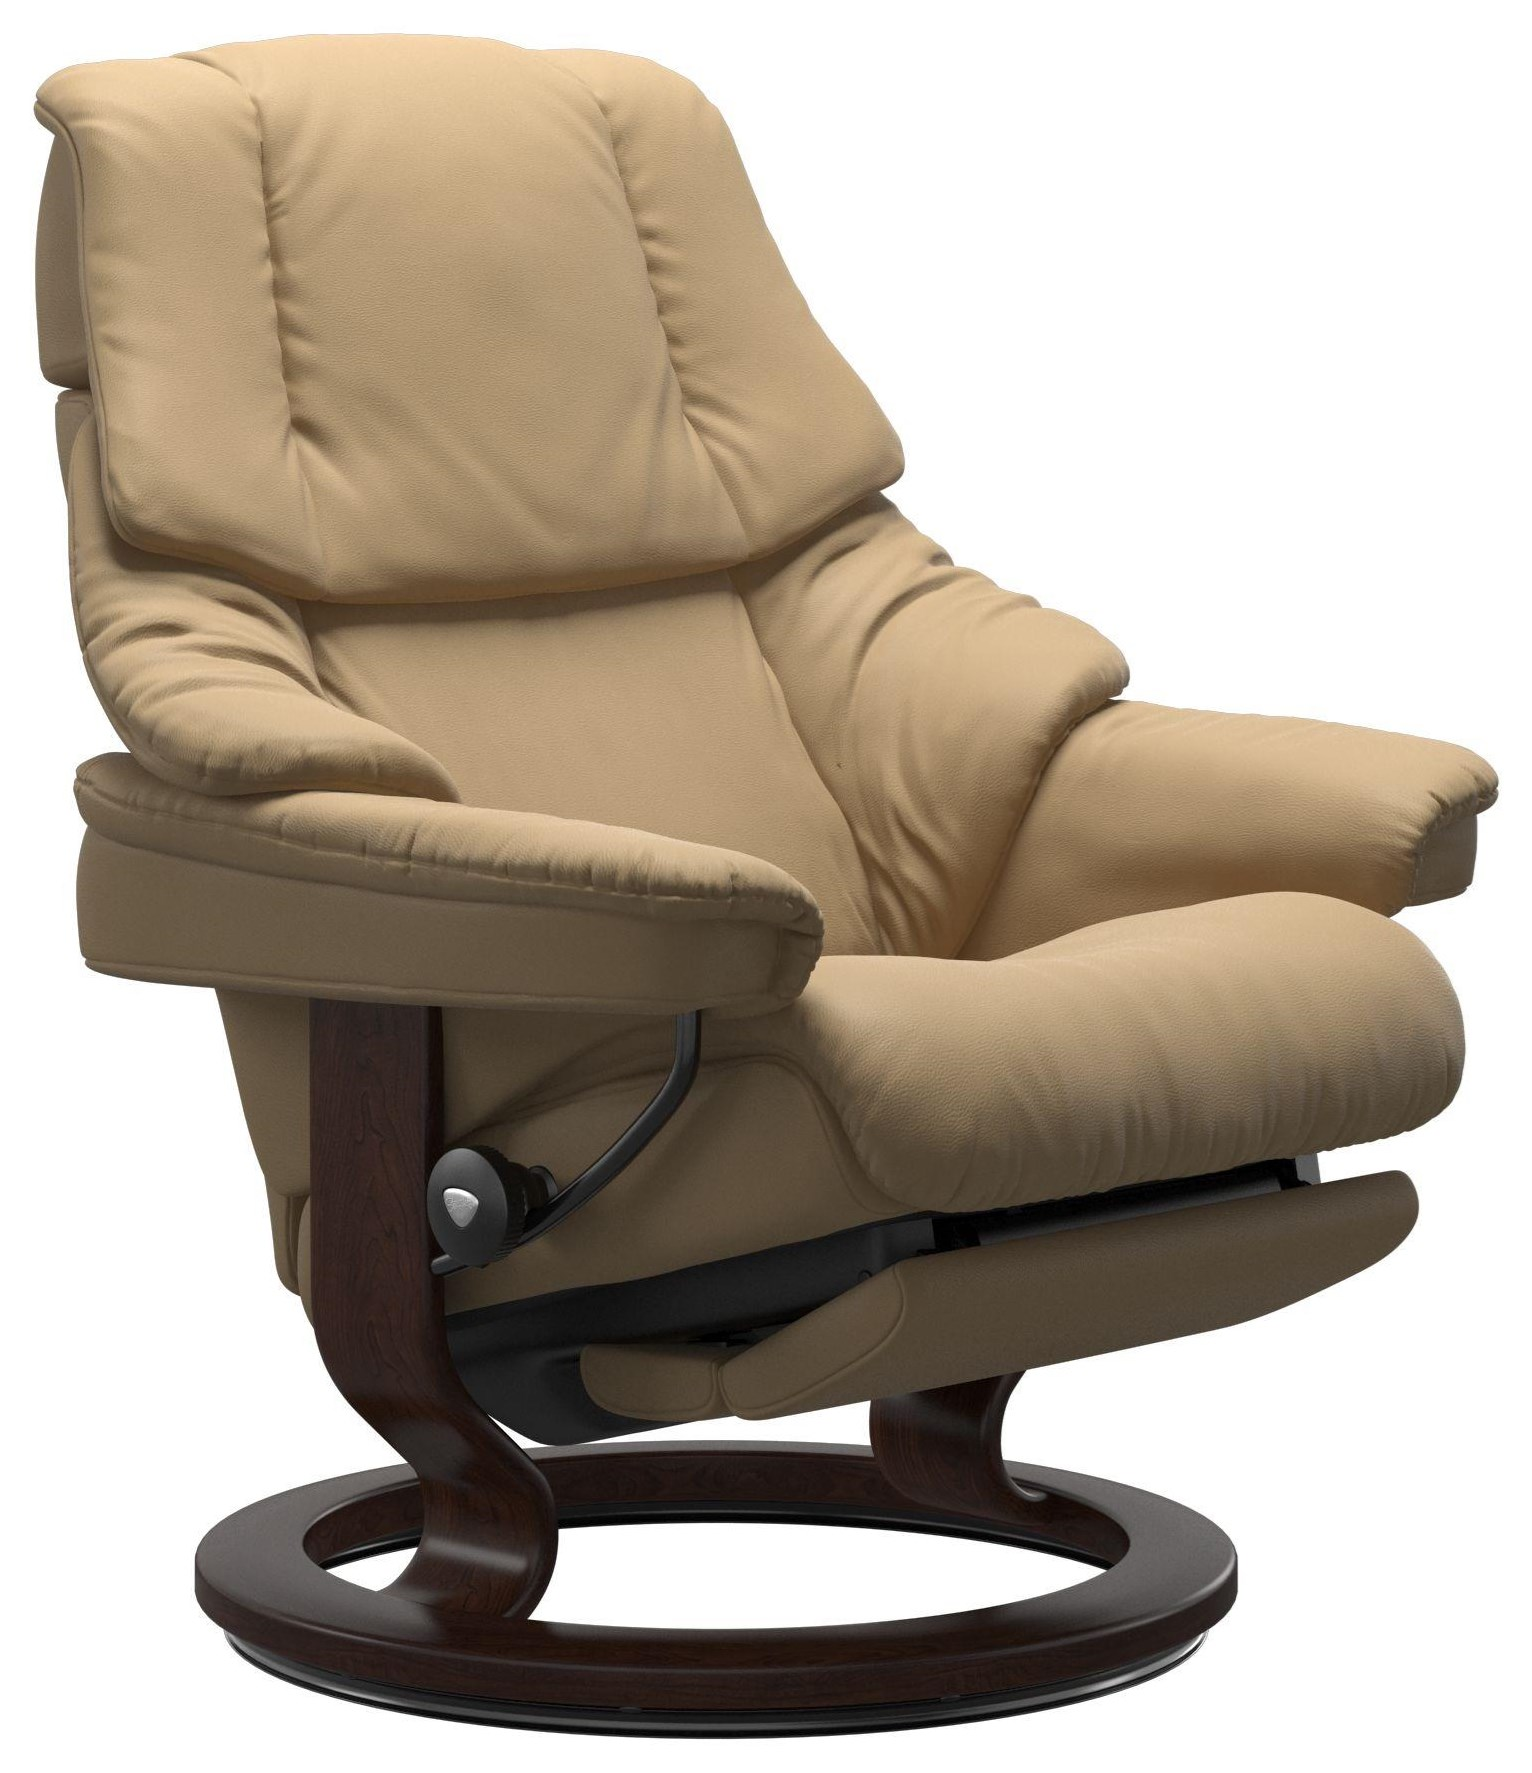 Reno Reno Classic Power Recliner Leg & Back by Stressless at Upper Room Home Furnishings